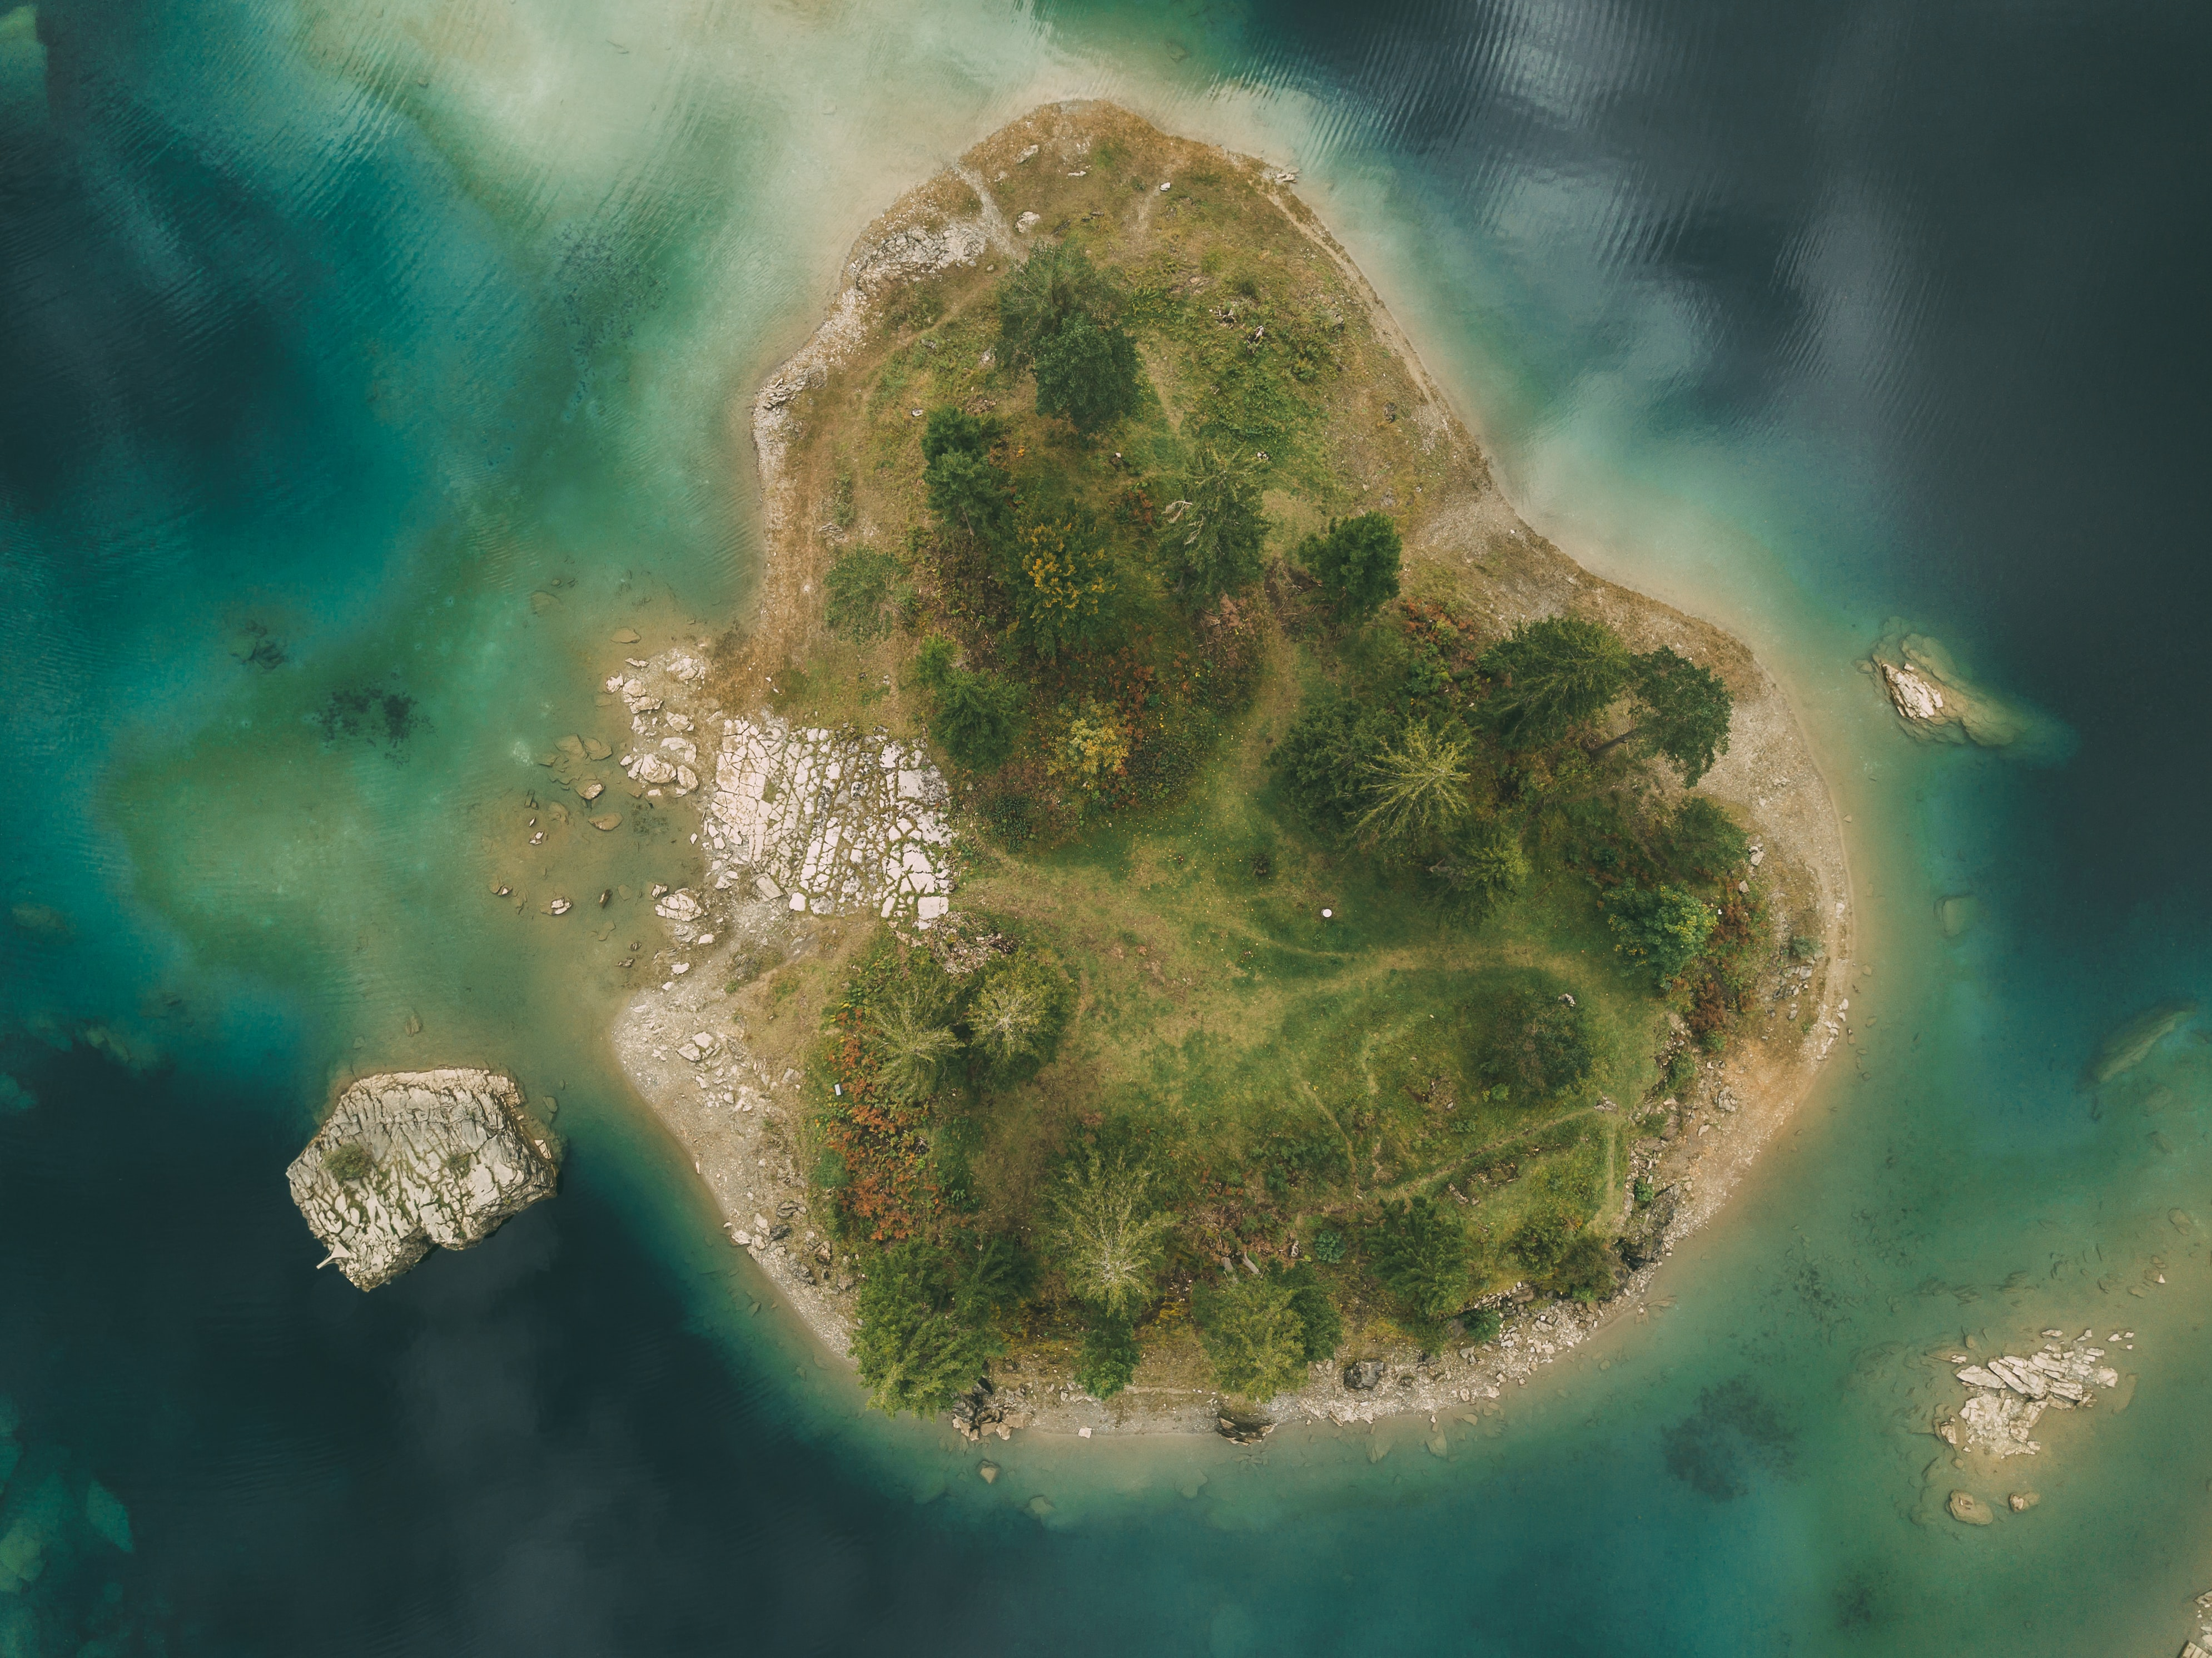 aerial photography of green island surrounded by water